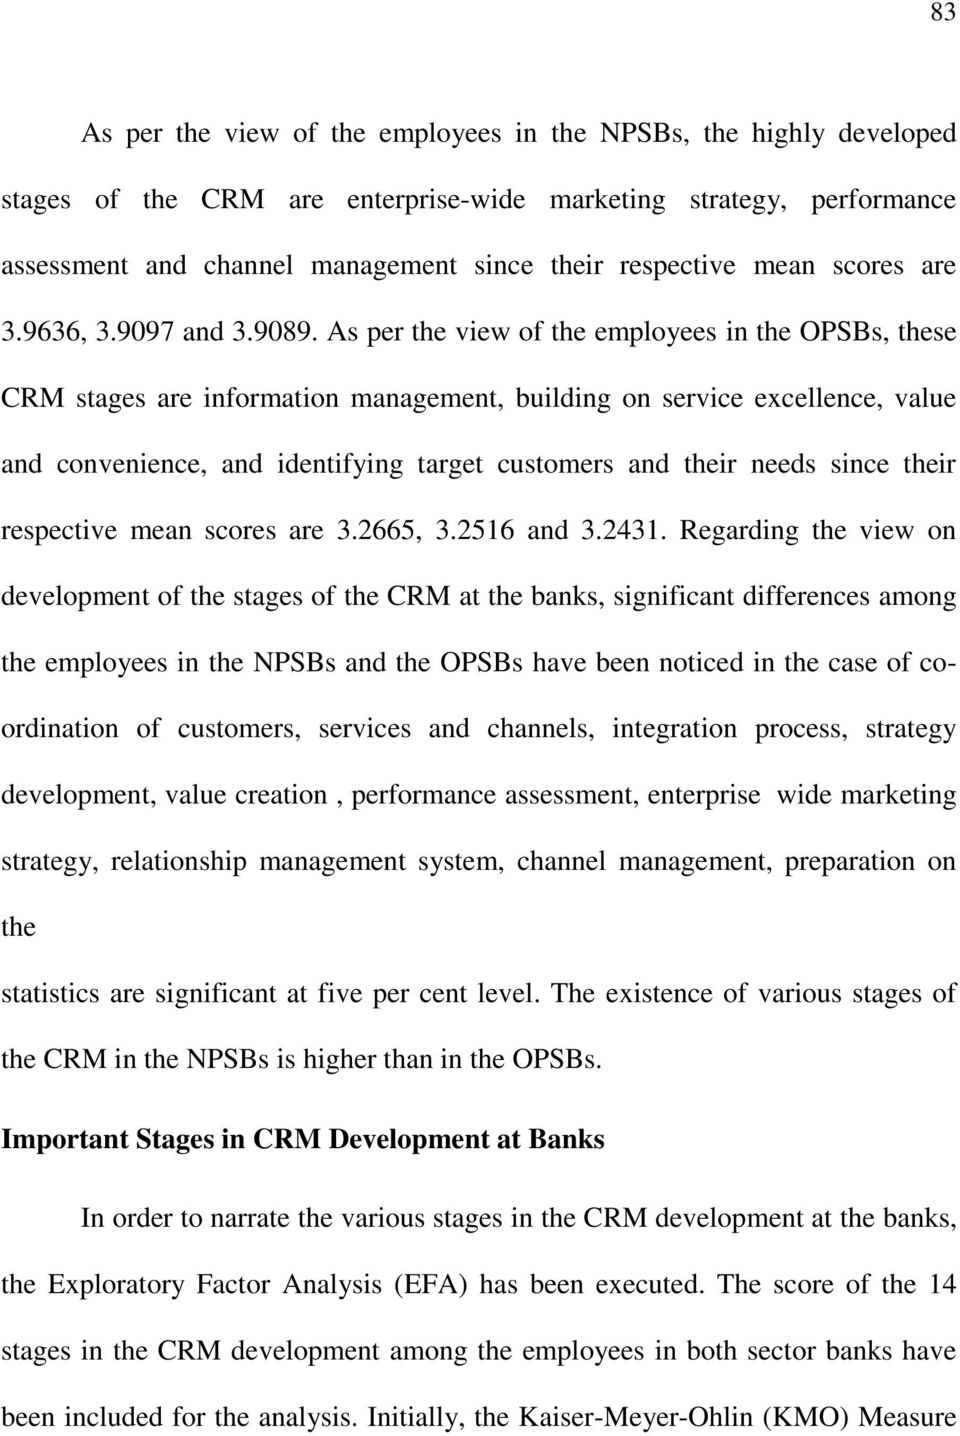 As per the view of the employees in the OPSBs, these CRM stages are information management, building on service excellence, value and convenience, and identifying target customers and their needs